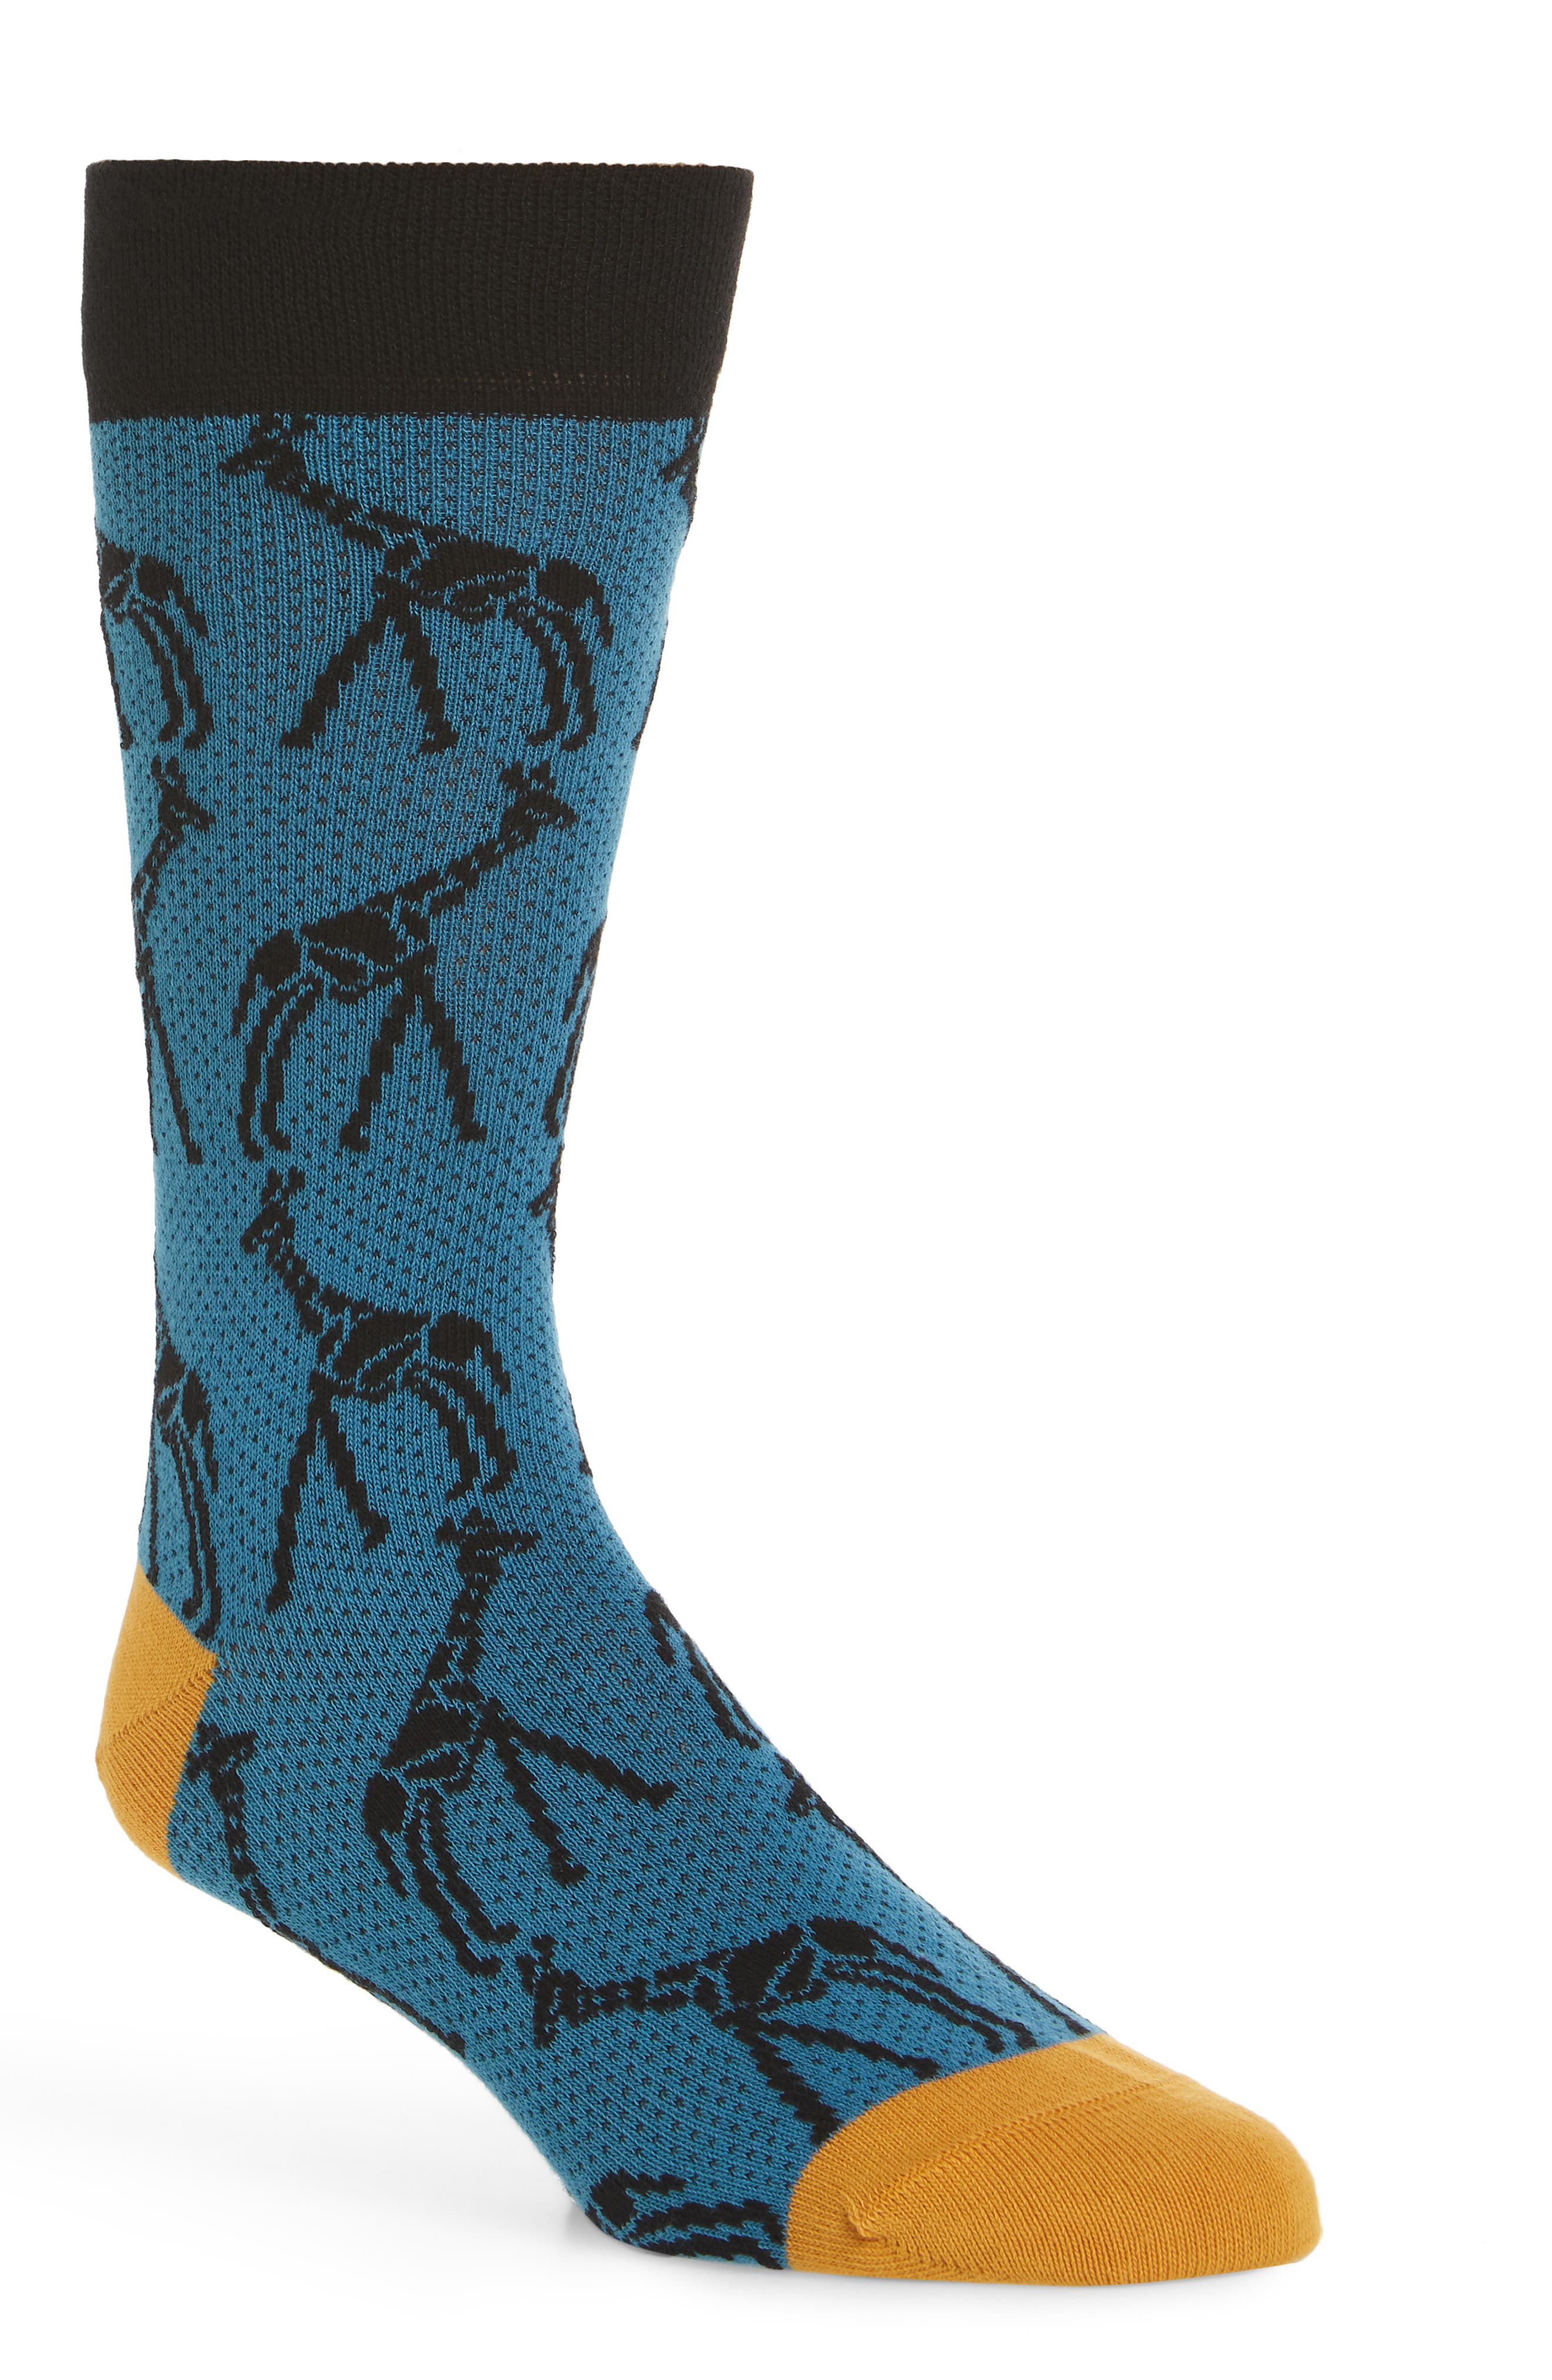 Giraffe Print Socks,                         Main,                         color, 430